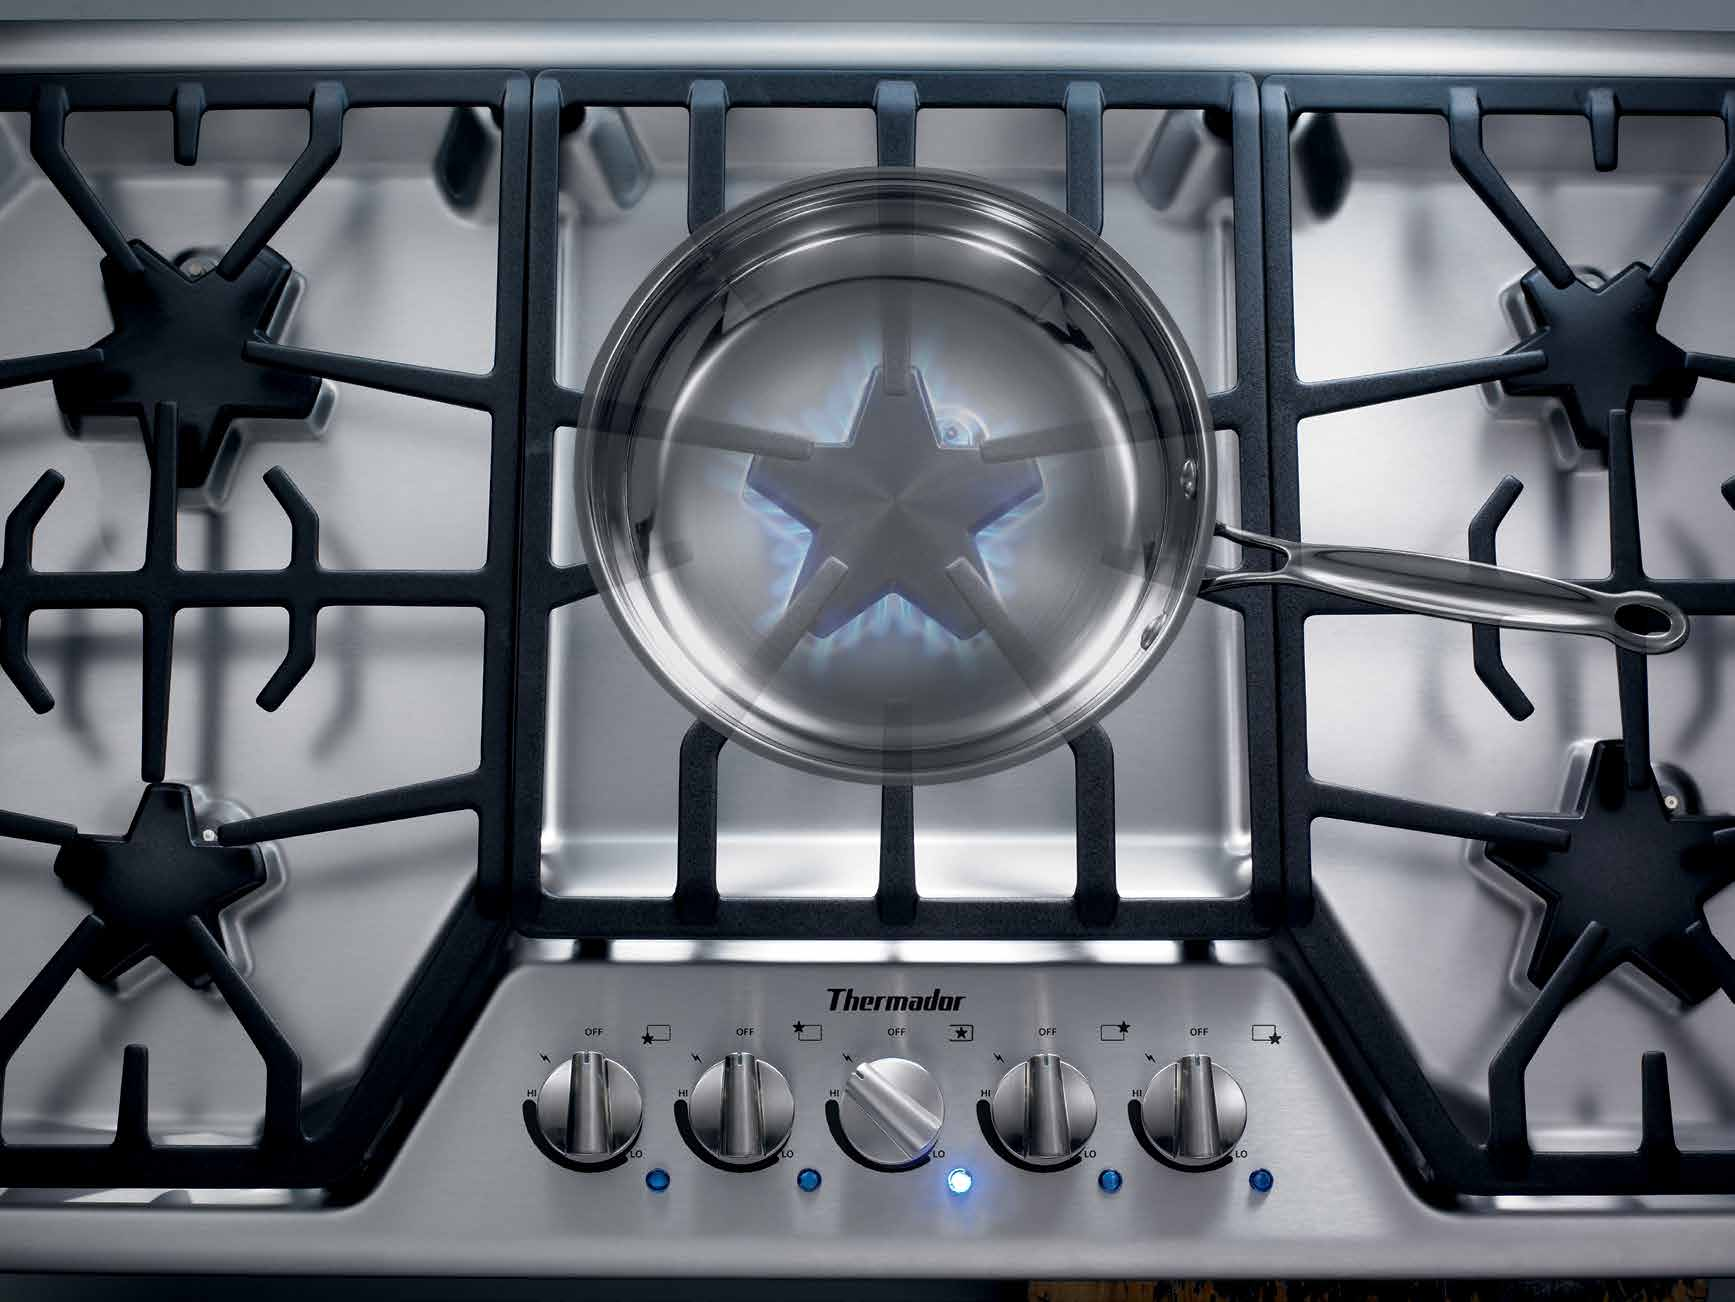 C El Ebr Atin G 10 0 Yea R S Of Inn Ova Tion Real Innovations For Thermador Mbes Microwave Wiring Diagram The Cooktop All Other Cooktops Want To Be Our Exclusive Patented Star Burner